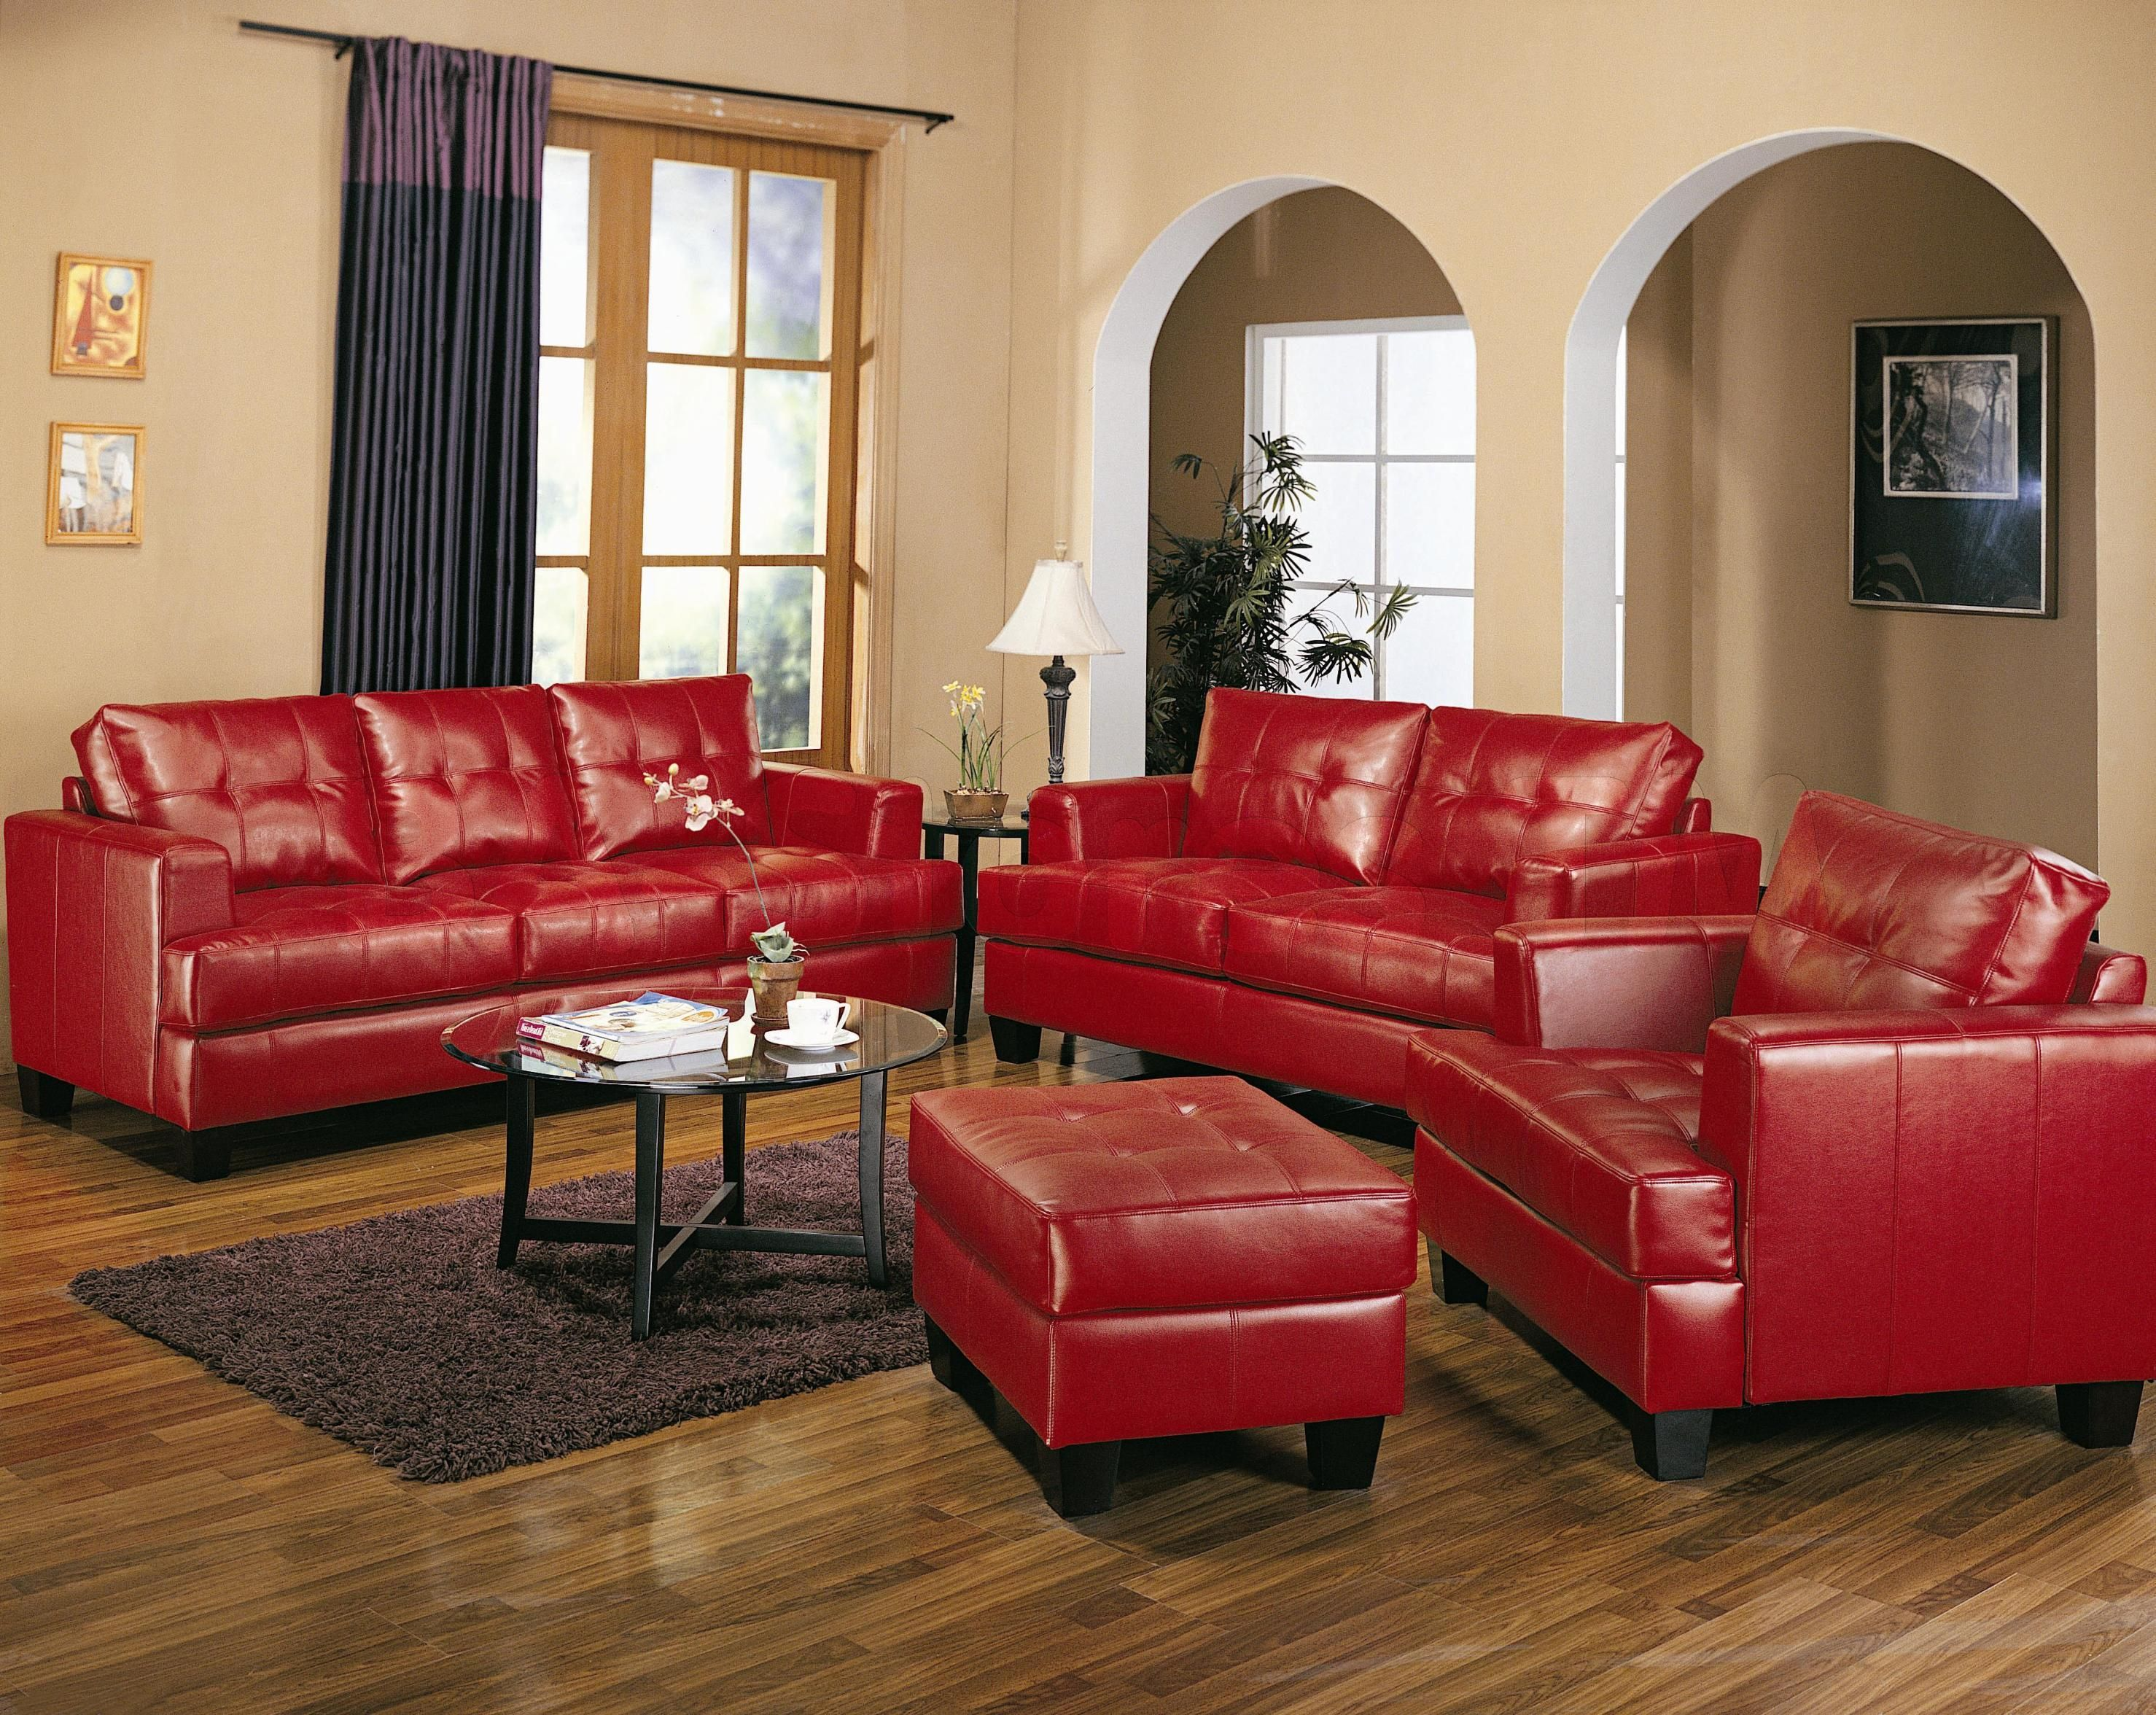 Wooden Furniture Living Room Designs 1000 Ideas About Red Couch Decorating On Pinterest Red Couch